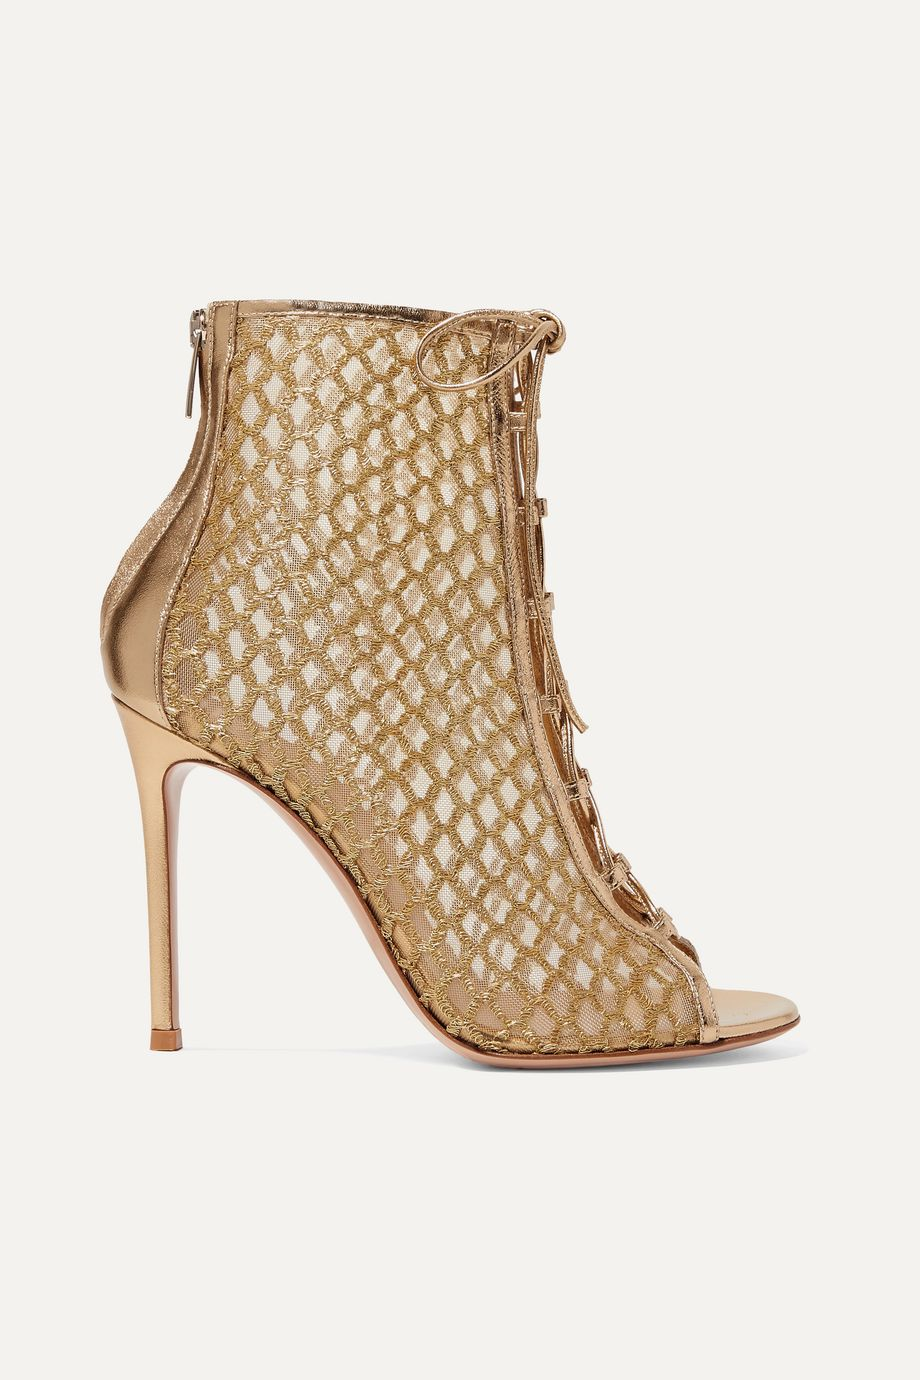 Gianvito Rossi 105 lace-up Lurex, mesh and metallic leather ankle boots